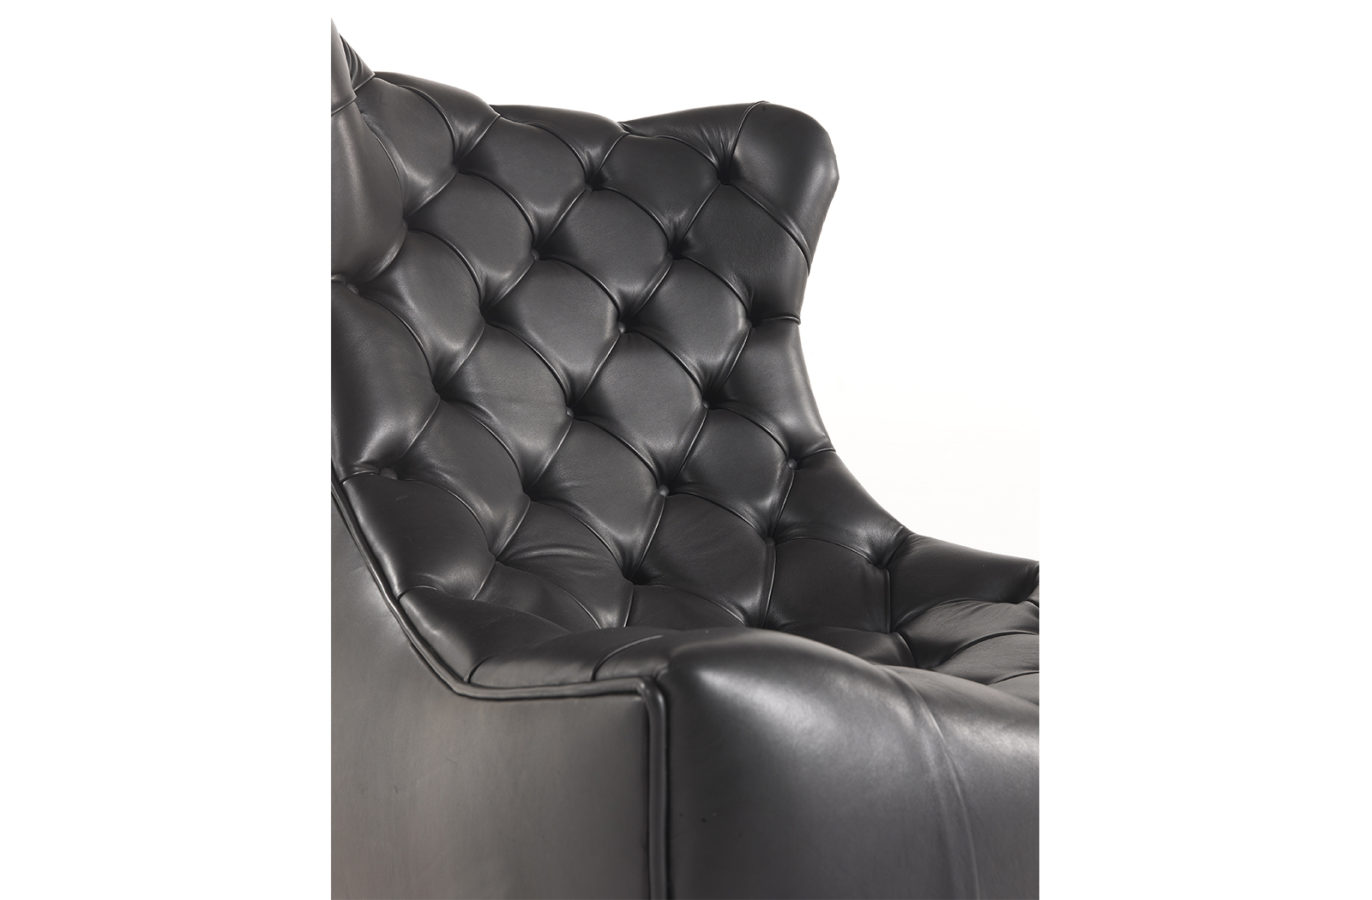 Gianfranco Ferre Home Miky Armchair 05